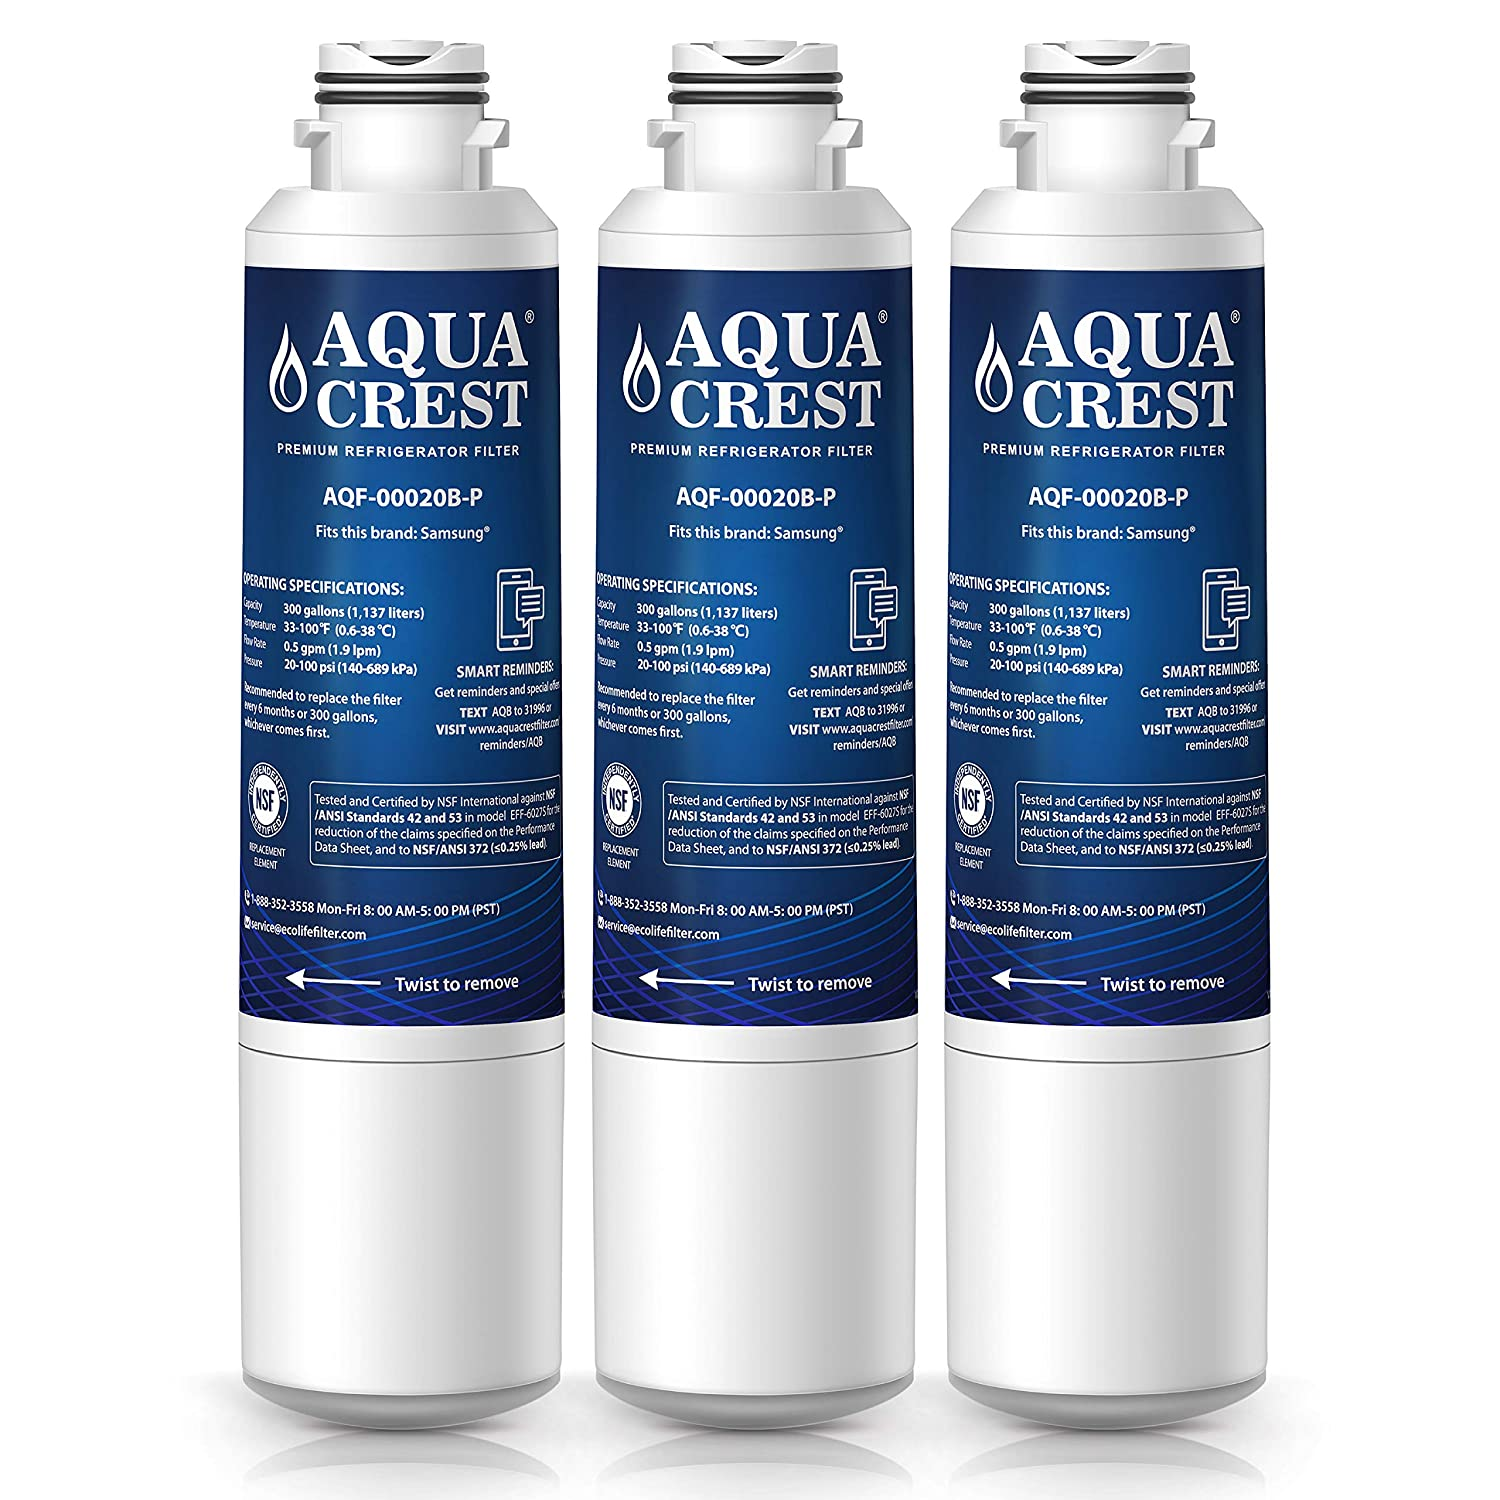 AQUACREST DA29-00020B Replacement Refrigerator Water Filter, Compatible with Samsung DA29-00020B, DA29-00020A, HAF-CIN/EXP, 46-9101 Water Filter (Pack of 3) Aqua Crest AQF-DA29-00020B-3